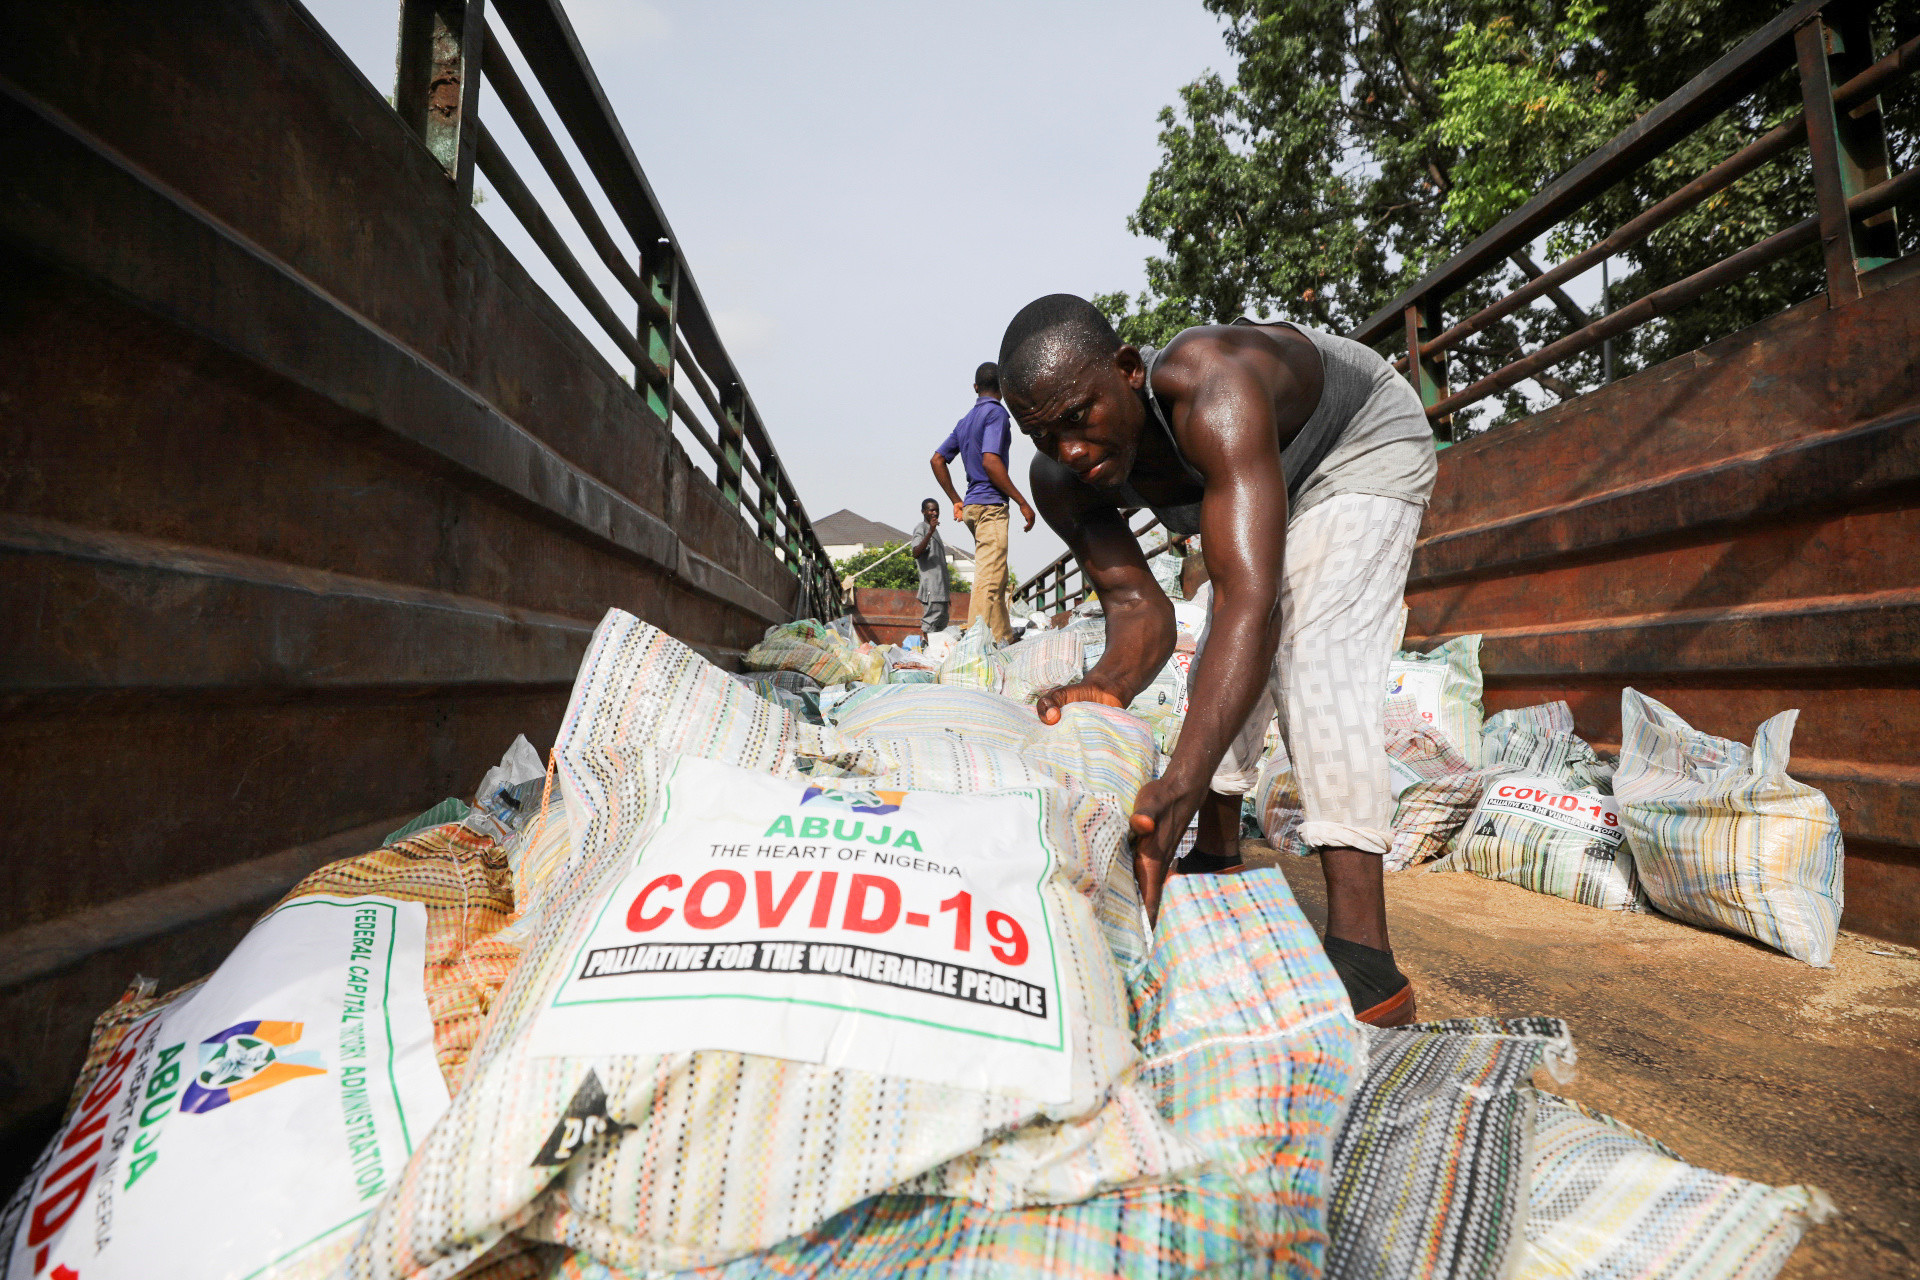 Men load sacks of rice among other food aid in a truck, to be distributed for those affected by procedures taken to curb the spread of coronavirus disease (COVID-19), in Abuja, Nigeria April 17, 2020. Picture taken April 17, 2020.